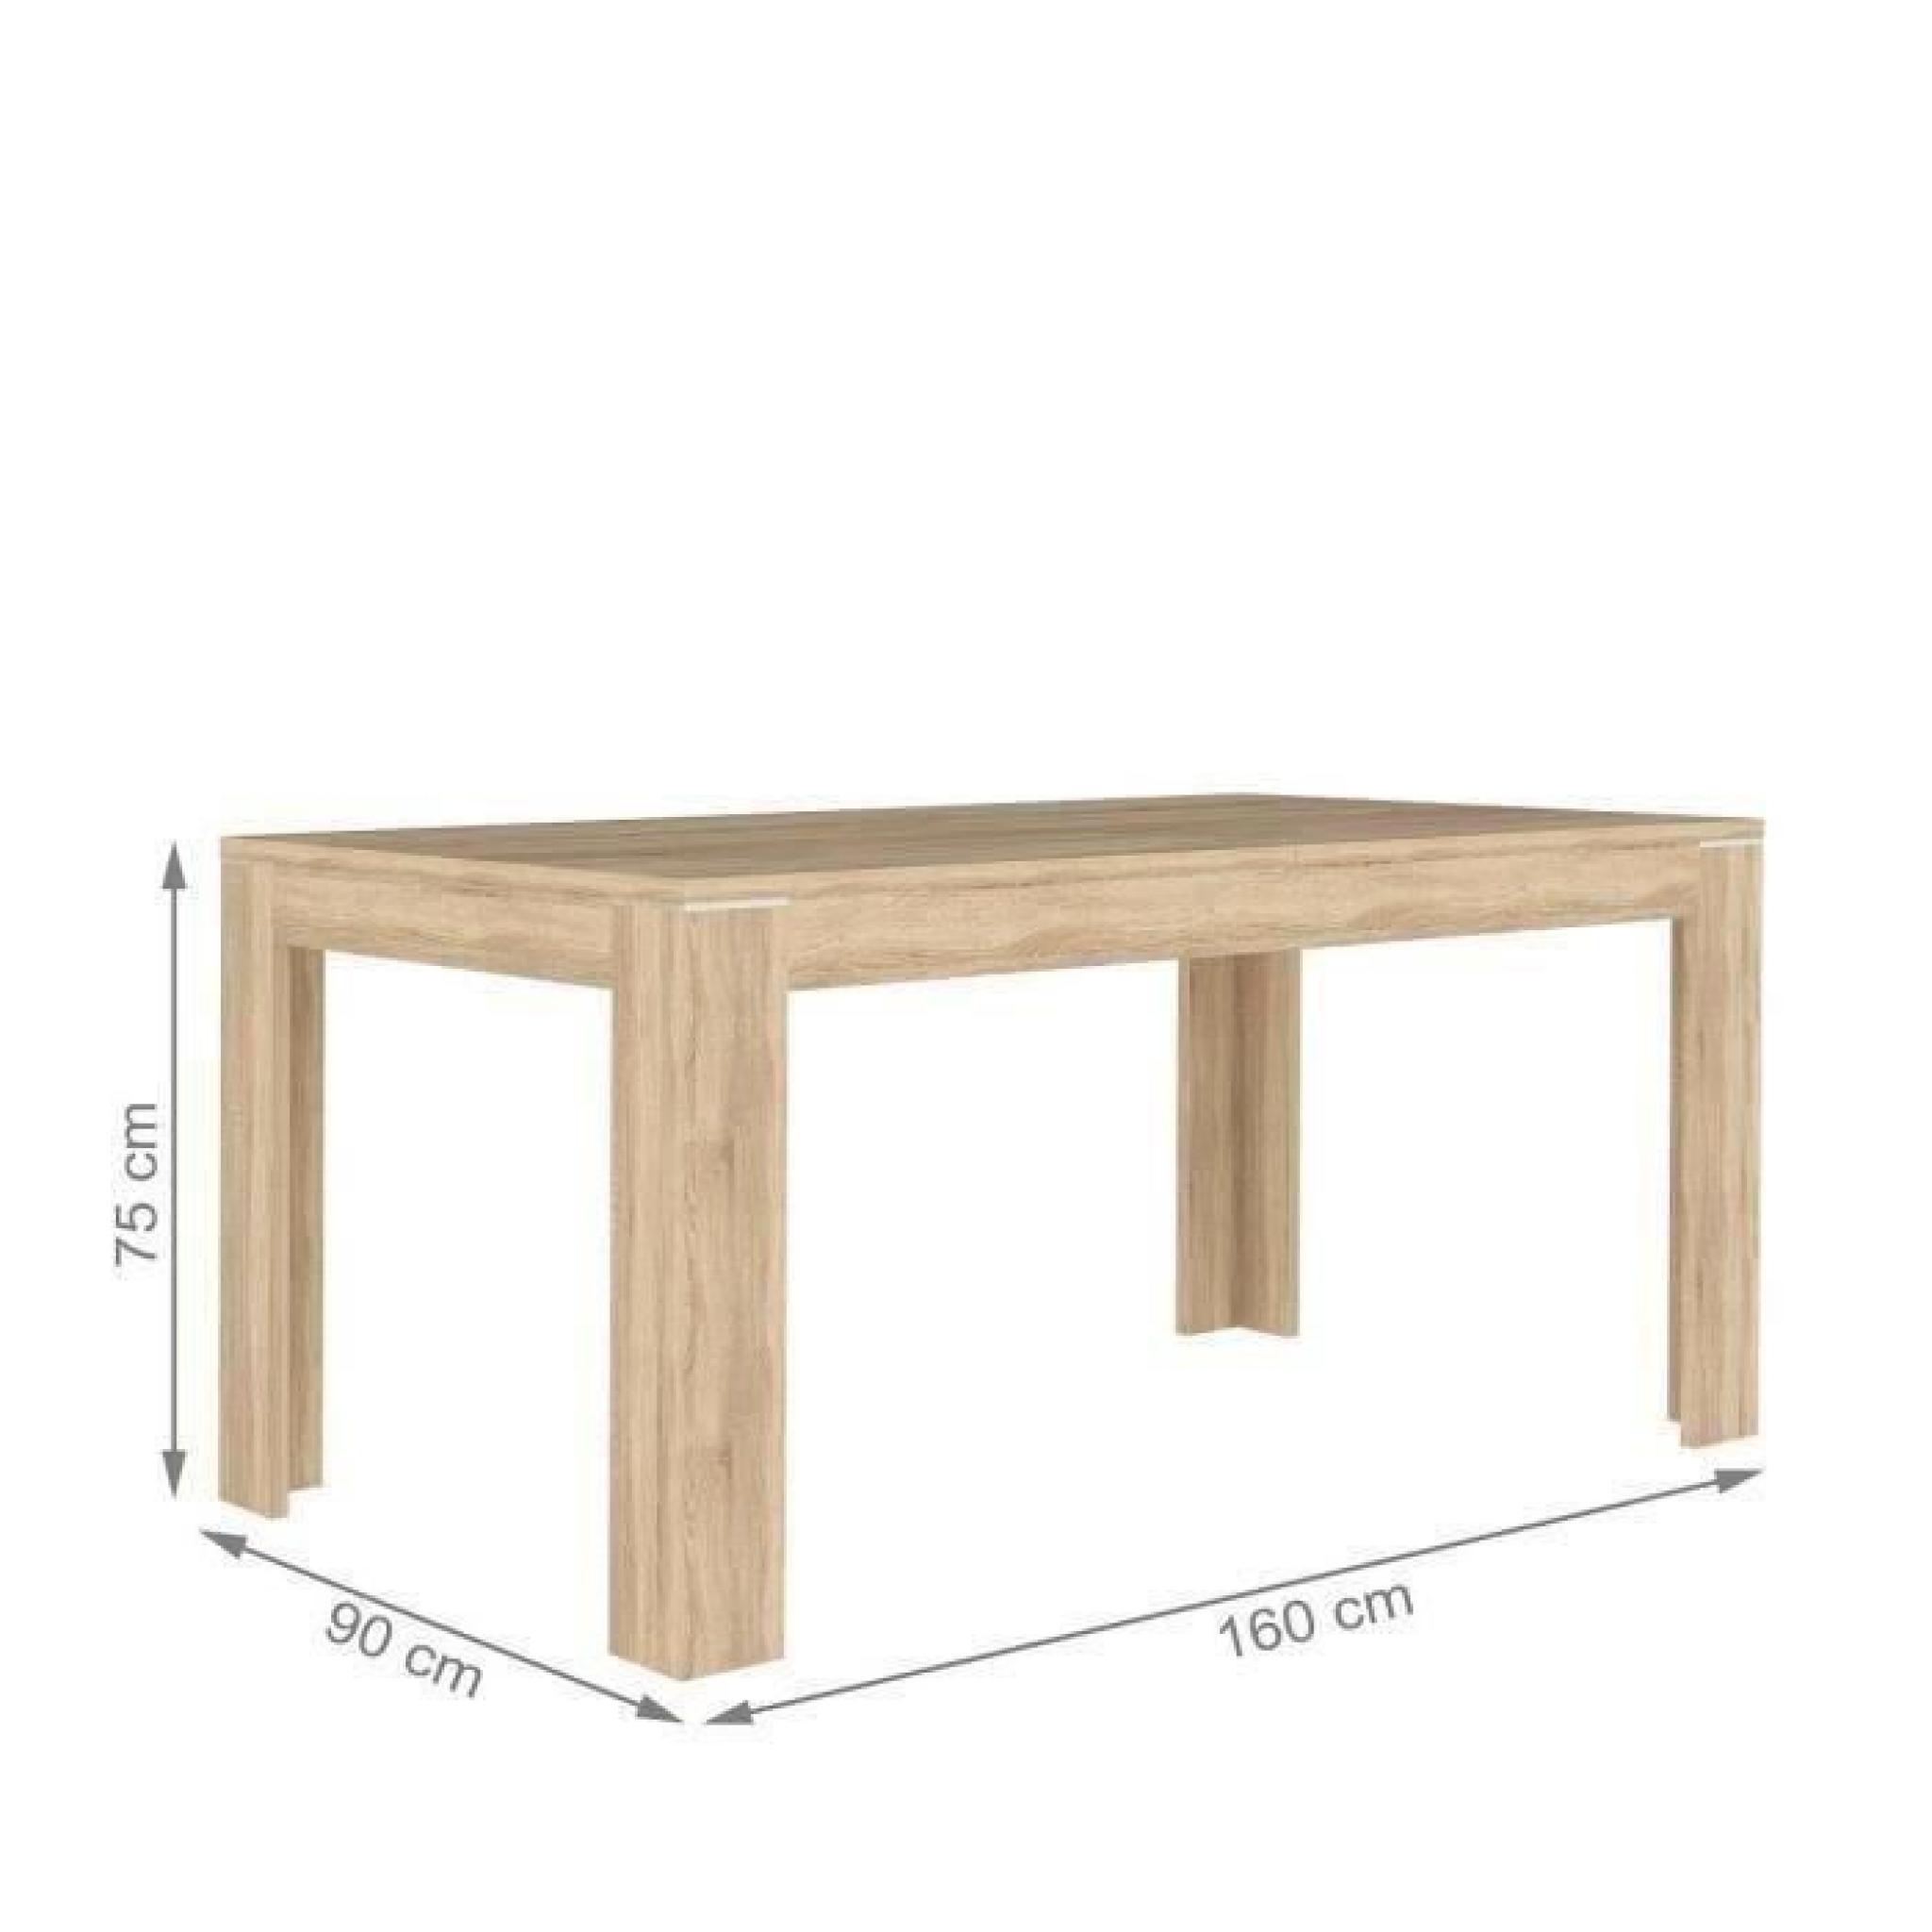 Table salle a manger extensible pas cher maison design for Table salle a manger extensible design